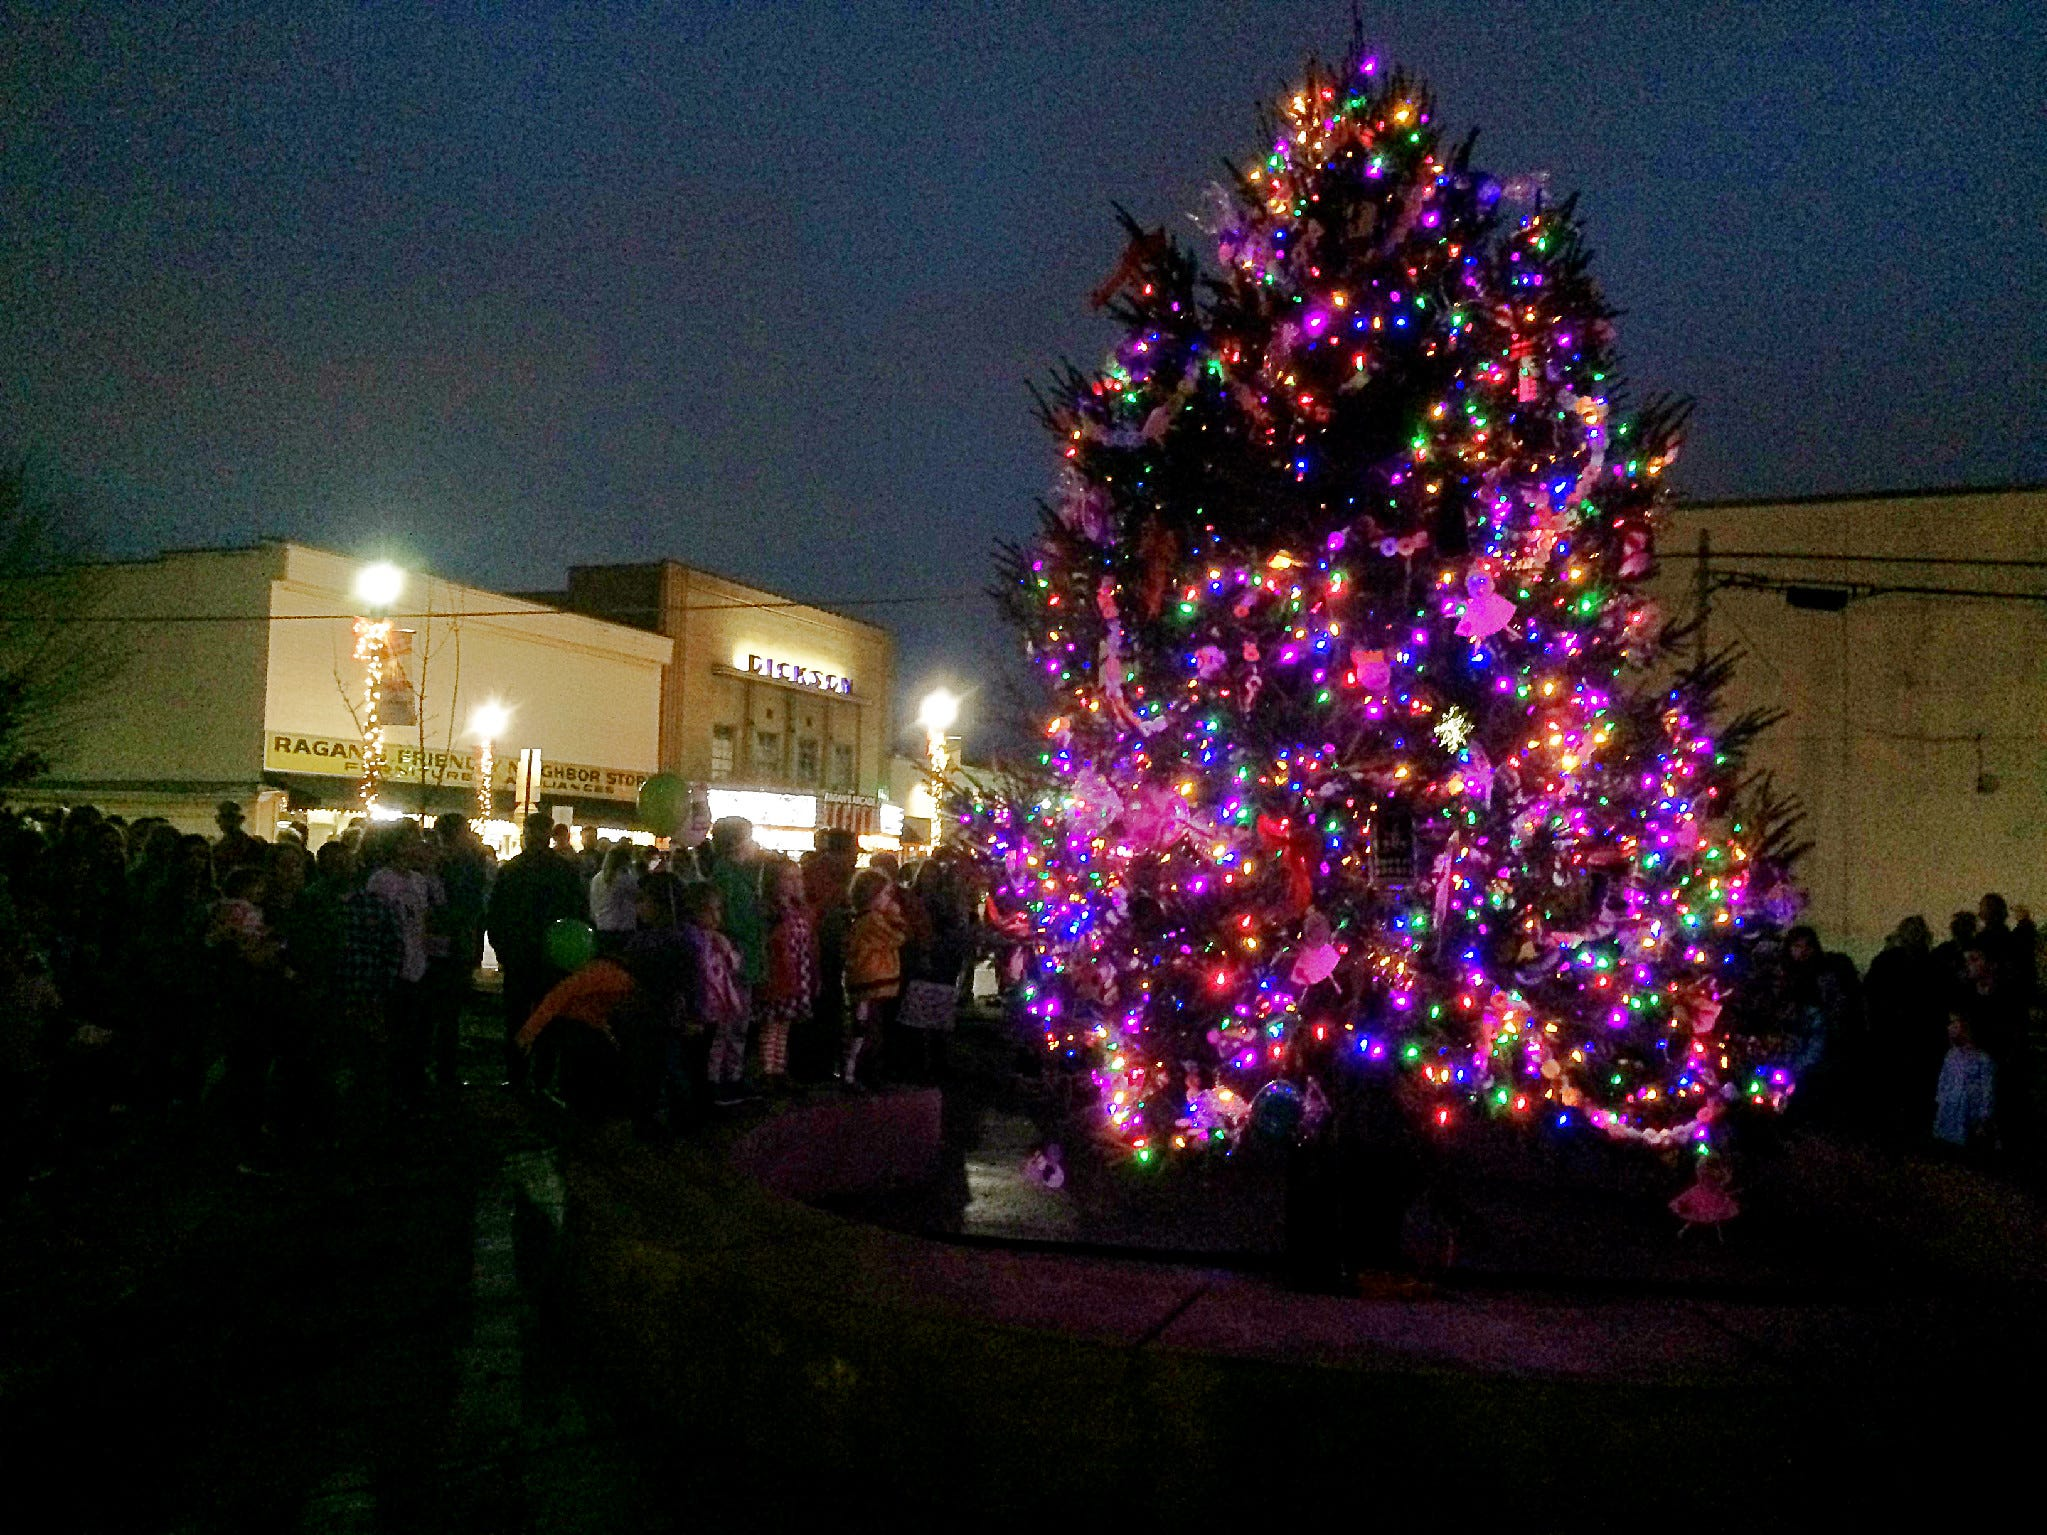 The City of Dickson Christmas Tree was lit in Downtown Dickson on Friday night.